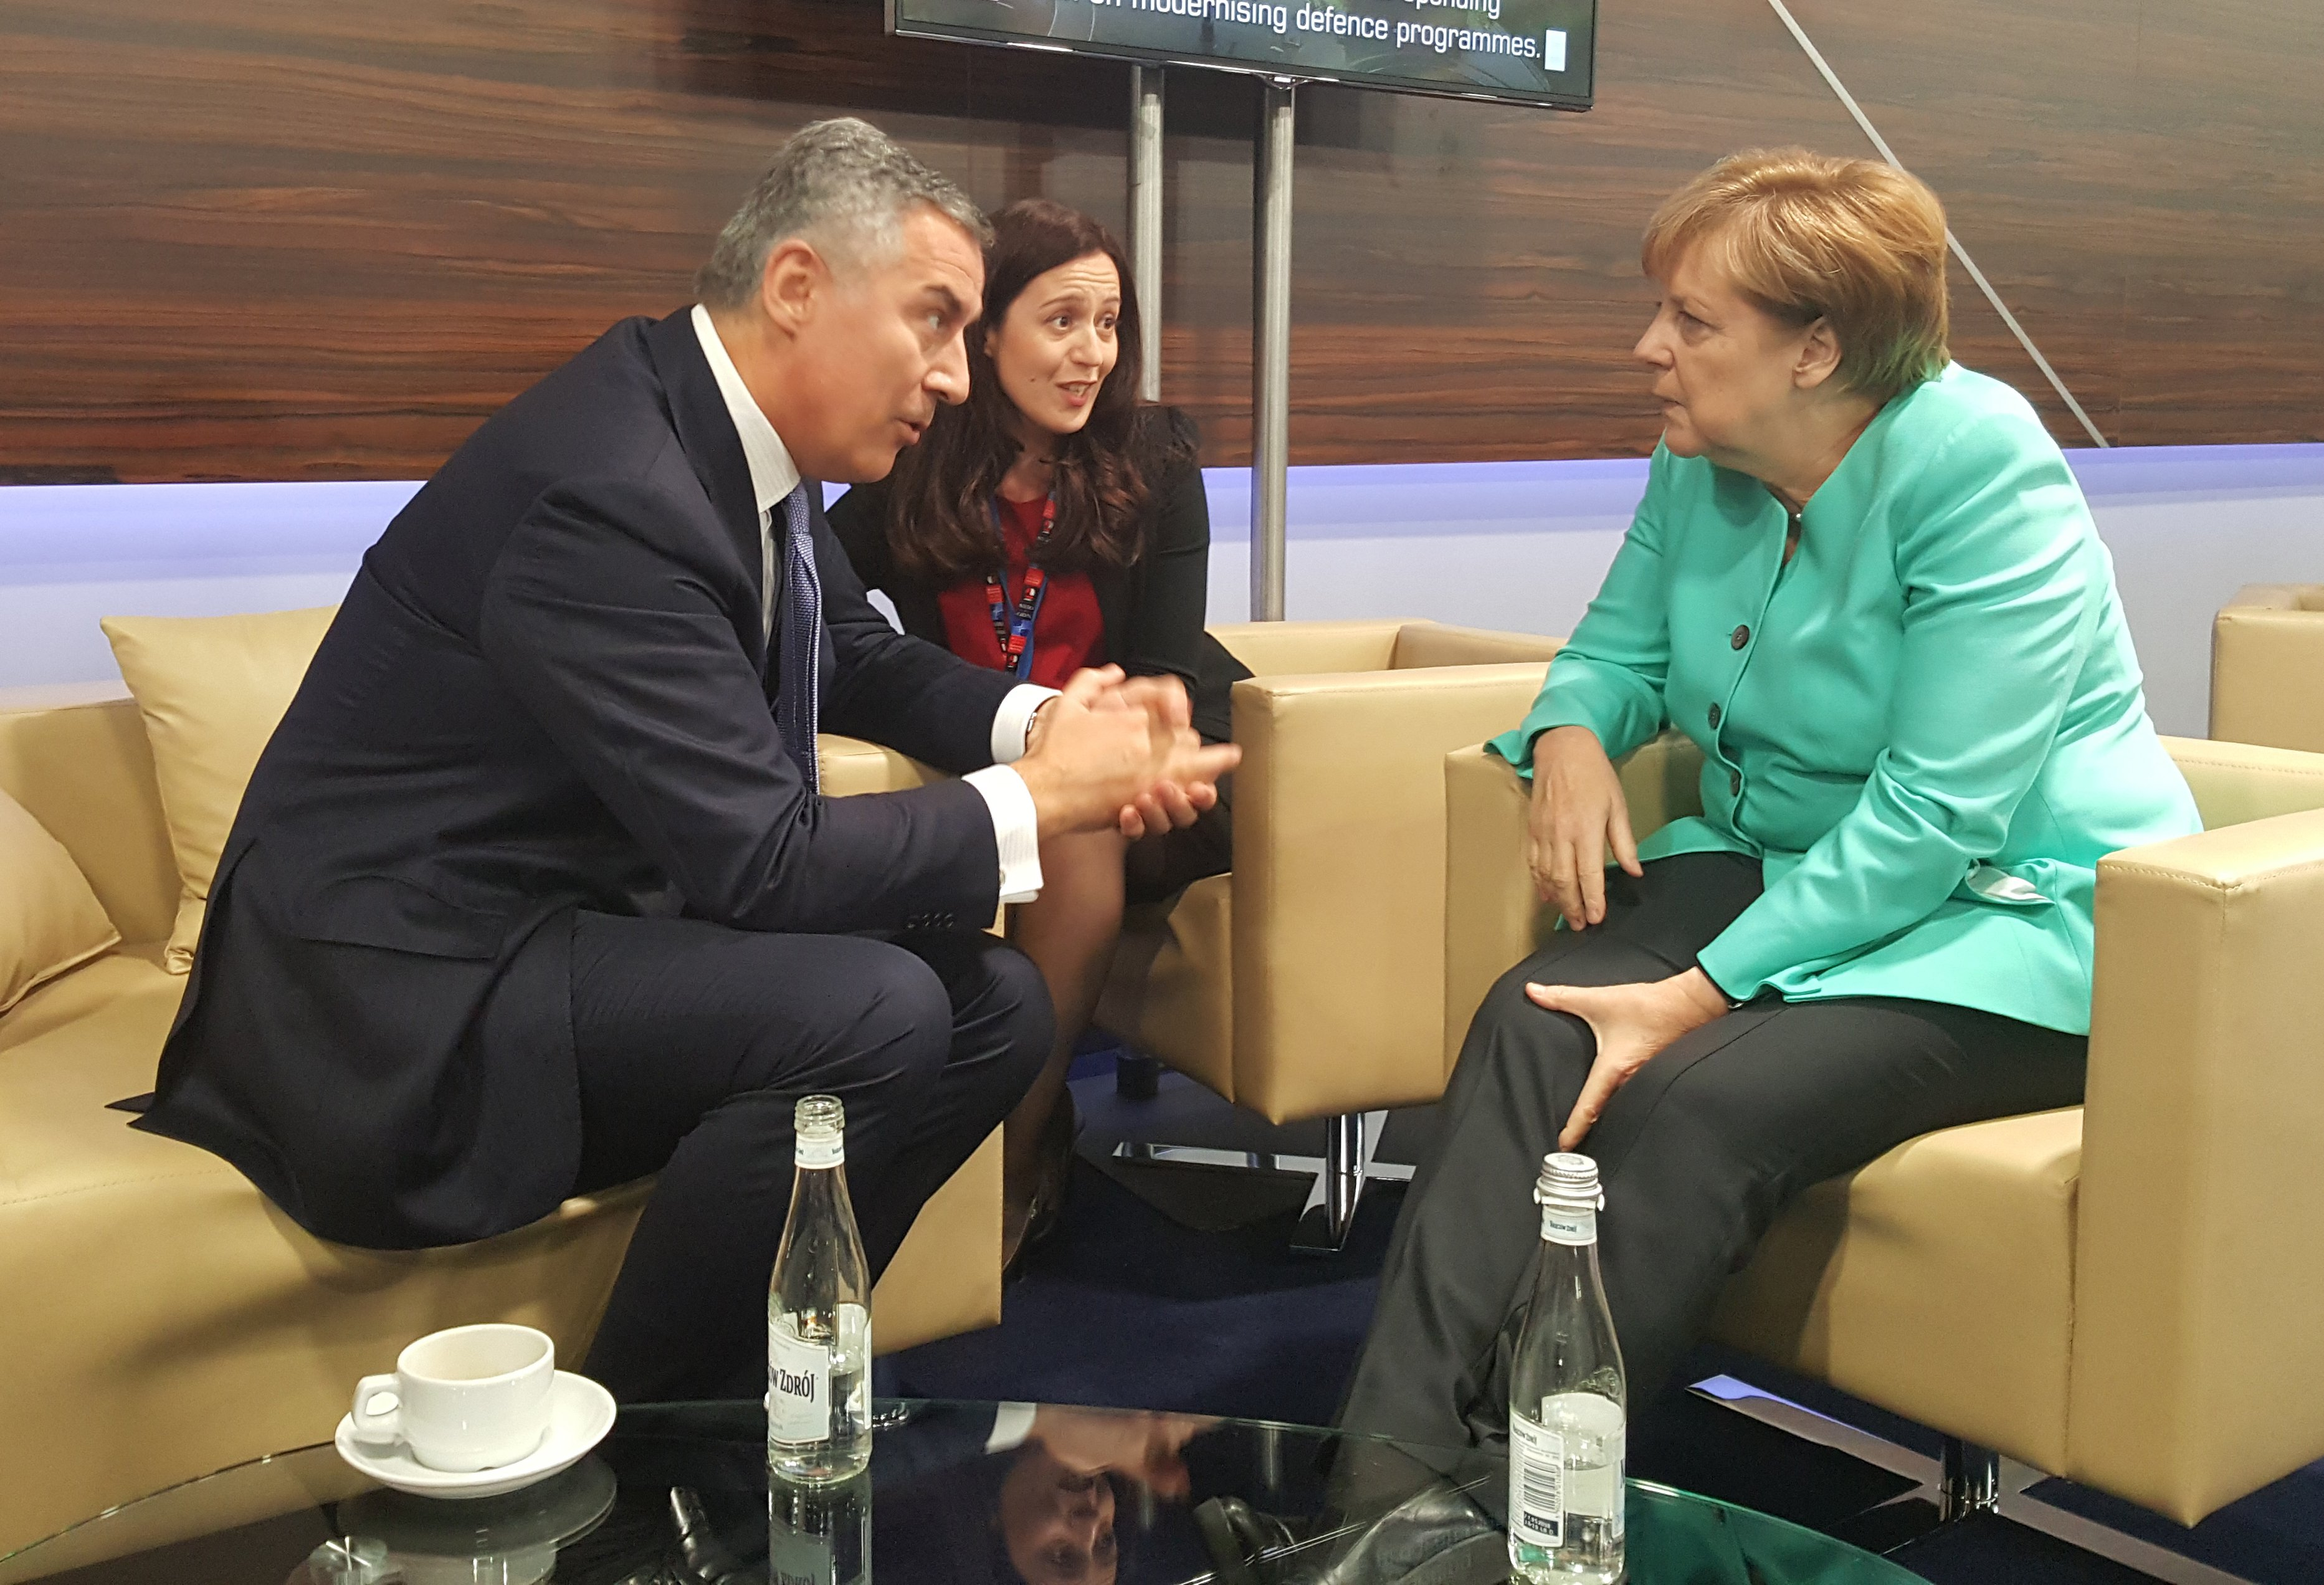 Đukanović meets Merkel during the NATO Summit in Warsaw 2016.